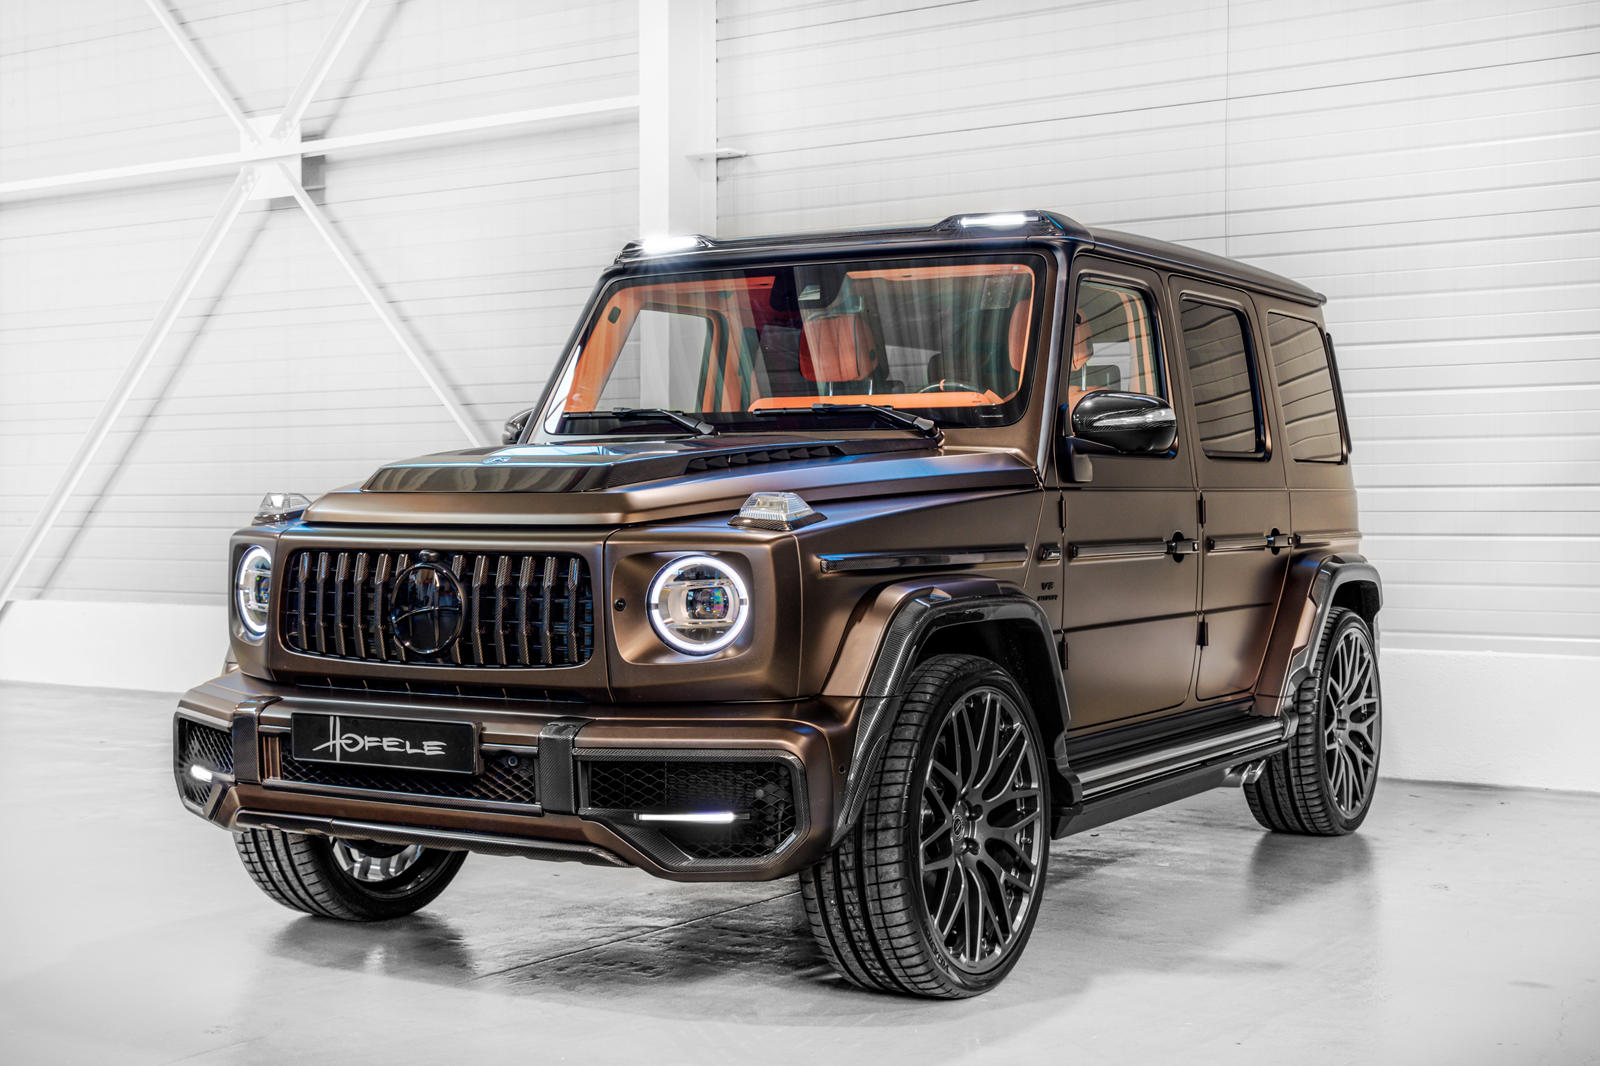 The new Mercedes-AMG G63 enjoys a rather unique market standing, being equally popular among luxury car connoisseurs, off-roading enthusiasts, and tuning aficionados. With its latest project, Hofele may as well have been targeting all three groups at once.